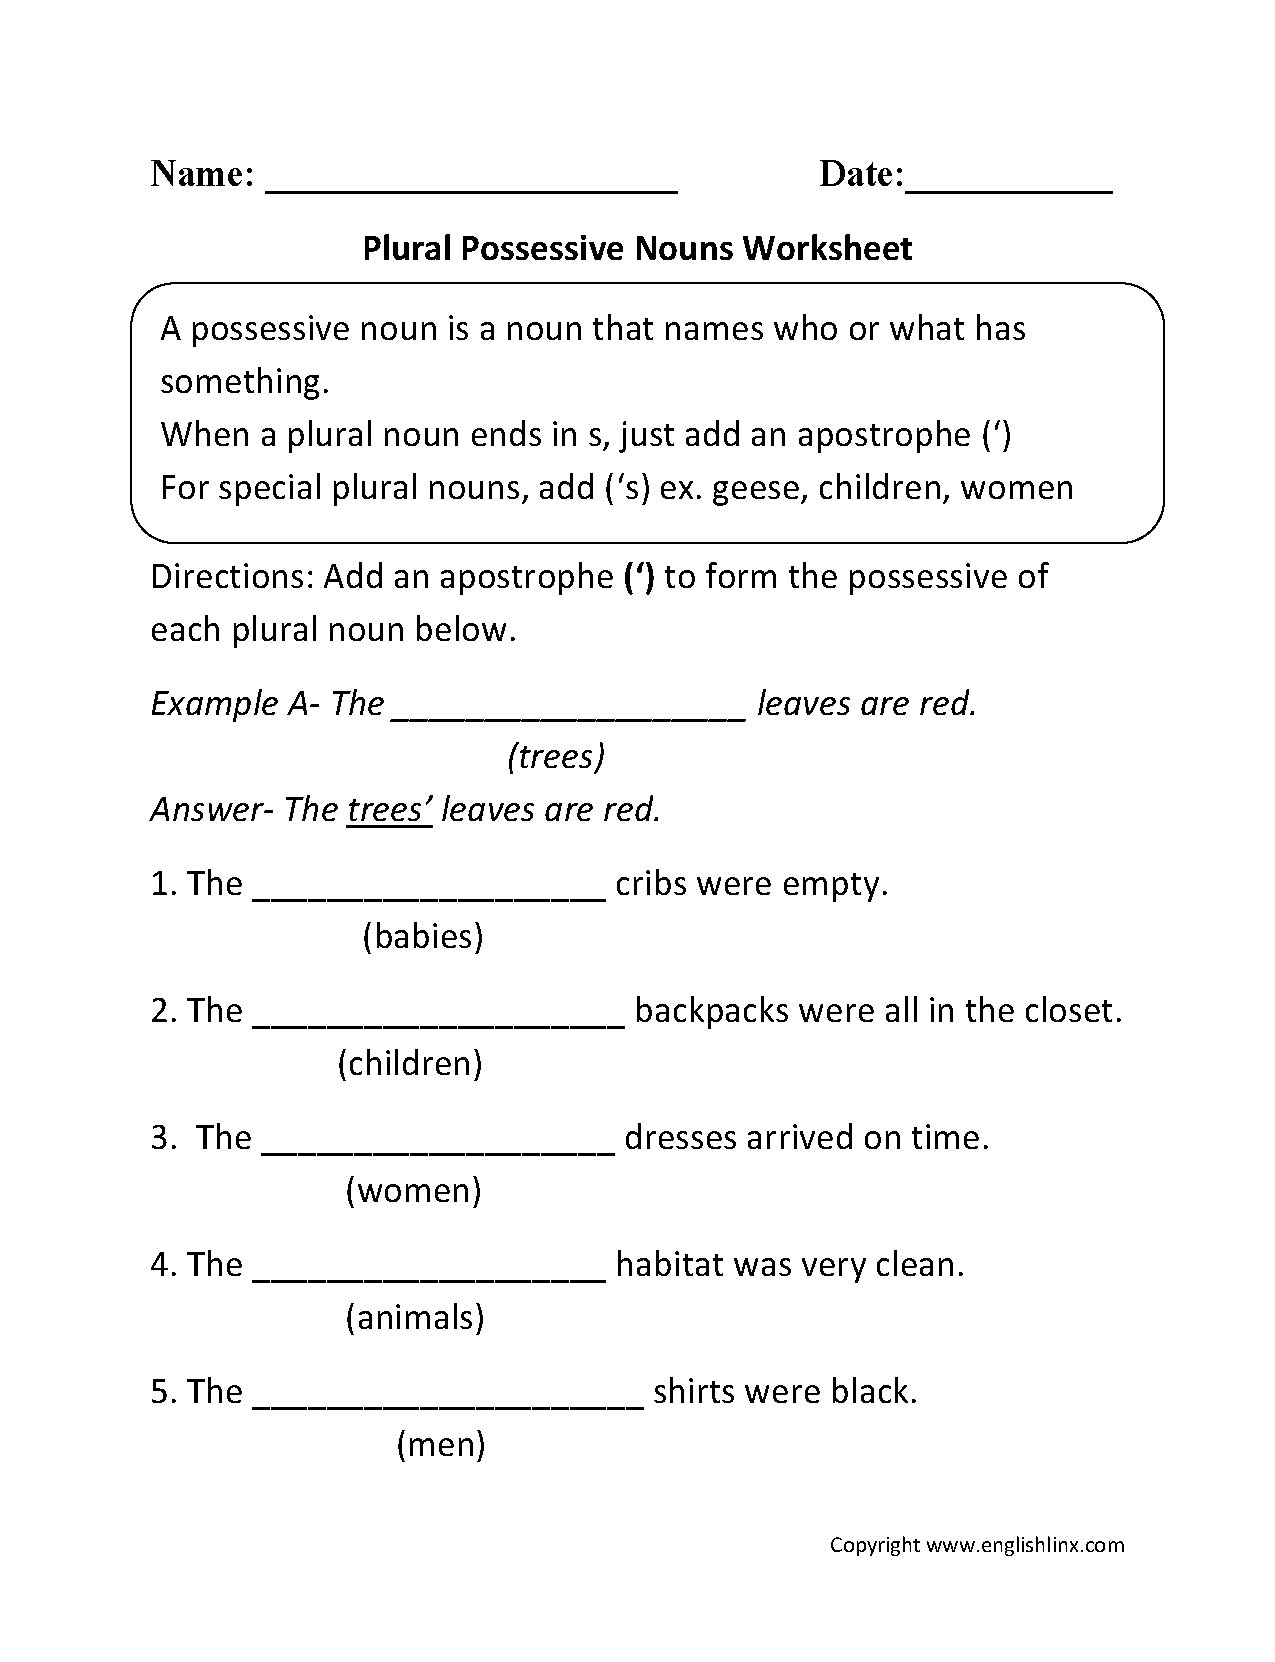 Aldiablosus  Picturesque Nouns Worksheets  Possessive Nouns Worksheets With Likable Possessive Nouns Worksheets With Cool Carbon Dioxide Oxygen Cycle Worksheet Also Adding Subtracting Fractions Worksheets In Addition Rounding To The Nearest  Worksheets And Division Worksheets With Answers As Well As College Worksheet Additionally Speech Articulation Worksheets From Englishlinxcom With Aldiablosus  Likable Nouns Worksheets  Possessive Nouns Worksheets With Cool Possessive Nouns Worksheets And Picturesque Carbon Dioxide Oxygen Cycle Worksheet Also Adding Subtracting Fractions Worksheets In Addition Rounding To The Nearest  Worksheets From Englishlinxcom